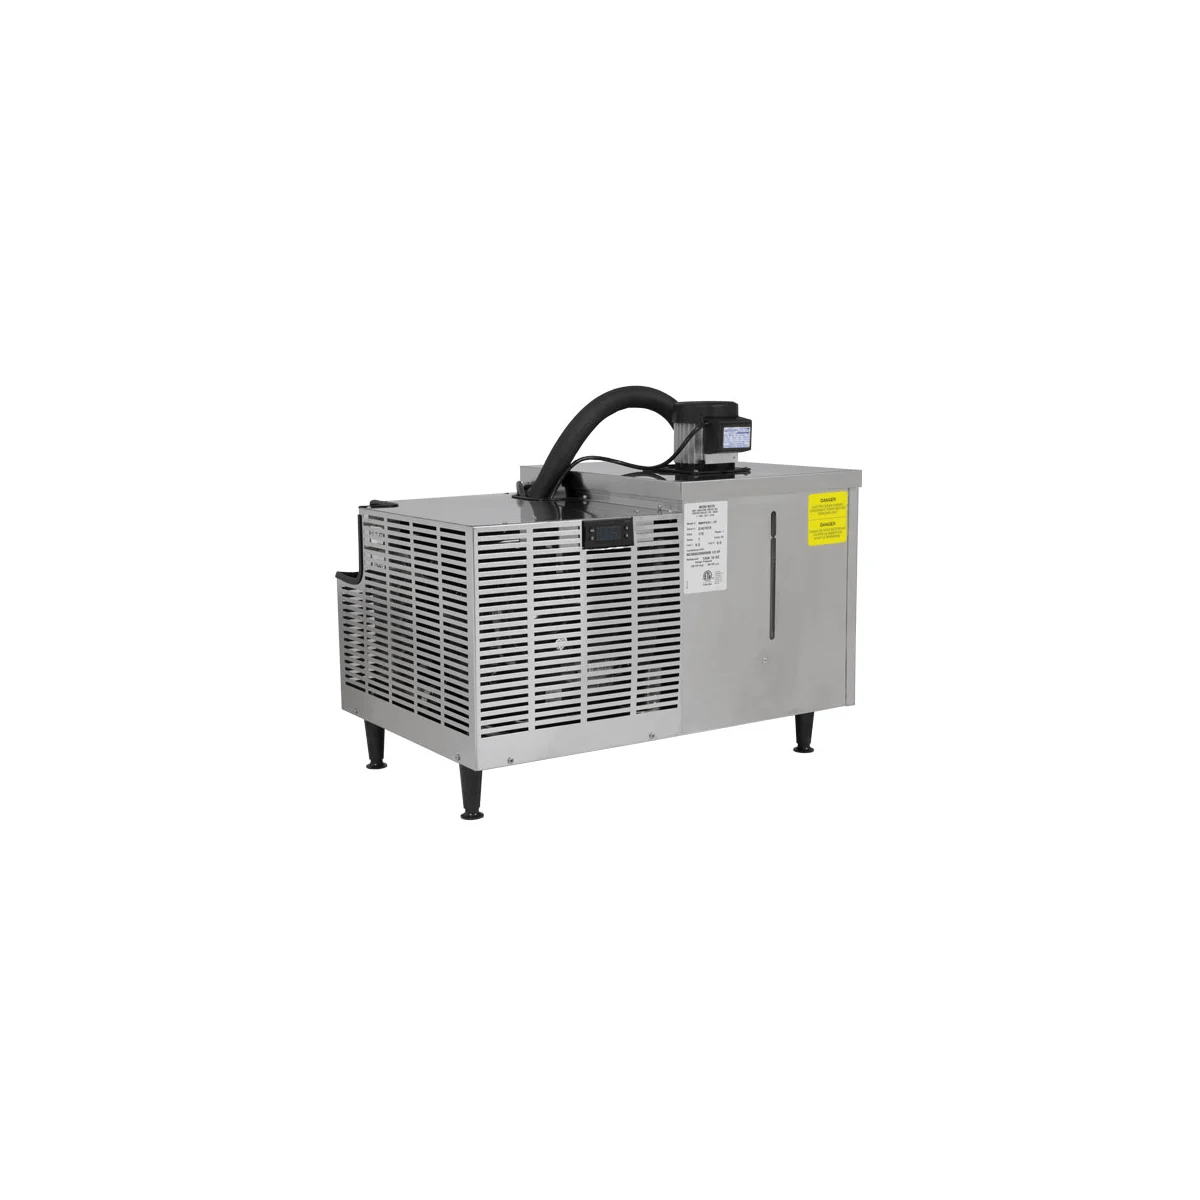 hight resolution of micromatic mmpp4301 ep pro line 1 3 hp glycol power pack up to 75 ft run